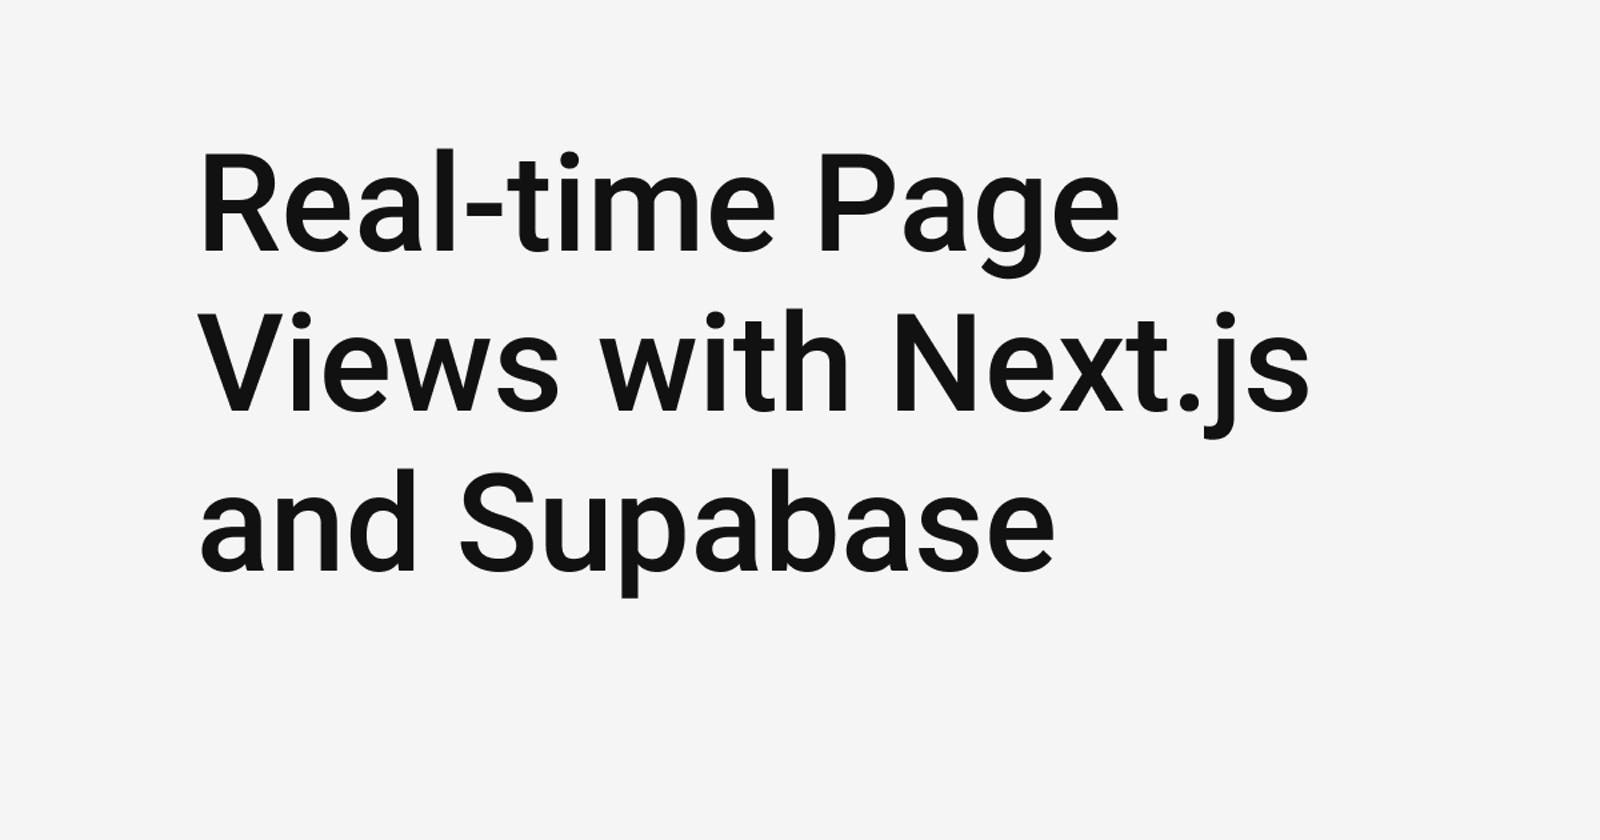 Real-time Page Views with Next.js and Supabase